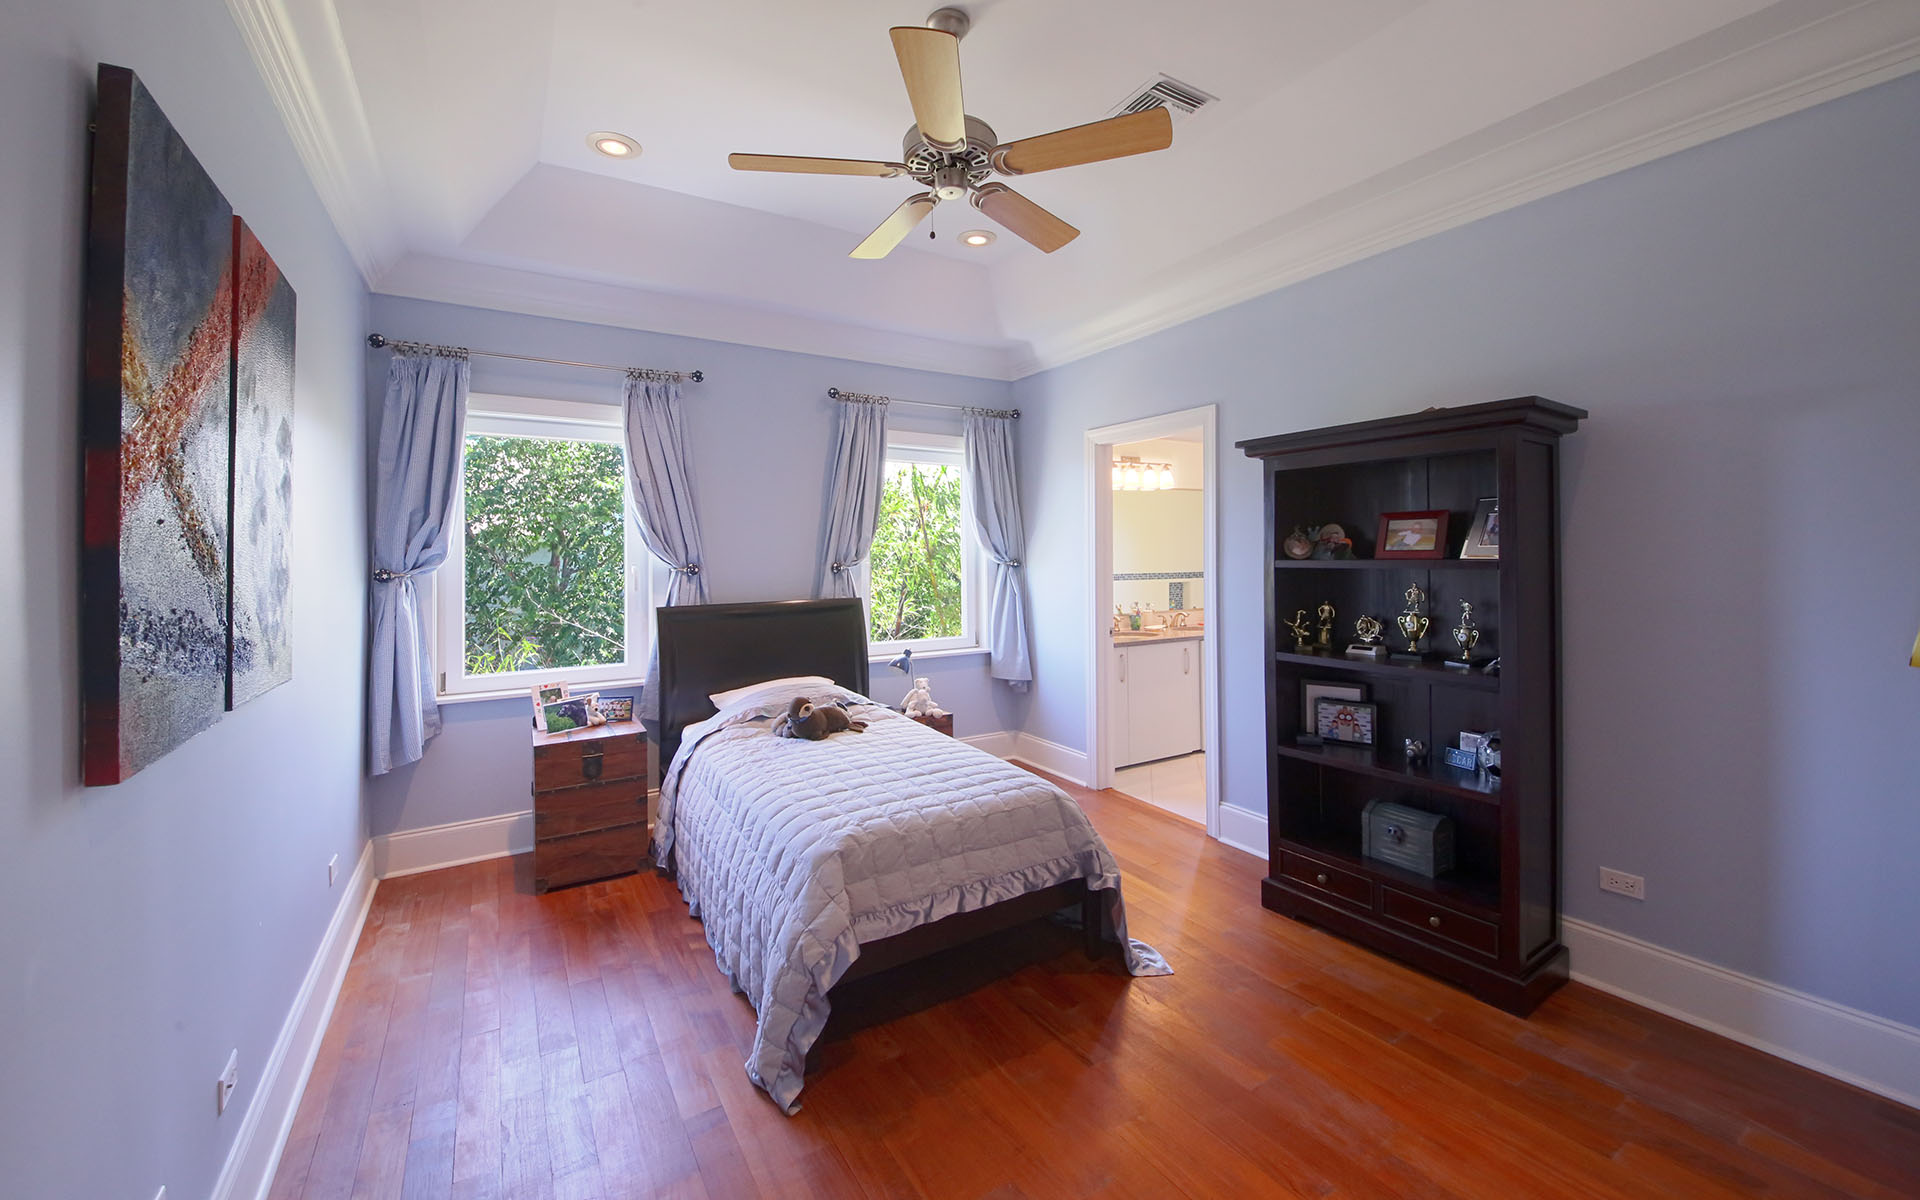 Additional photo for property listing at 22 Canal Beach, Old Fort Bay MLS:31256 Old Fort Bay, Nassau And Paradise Island, Bahamas